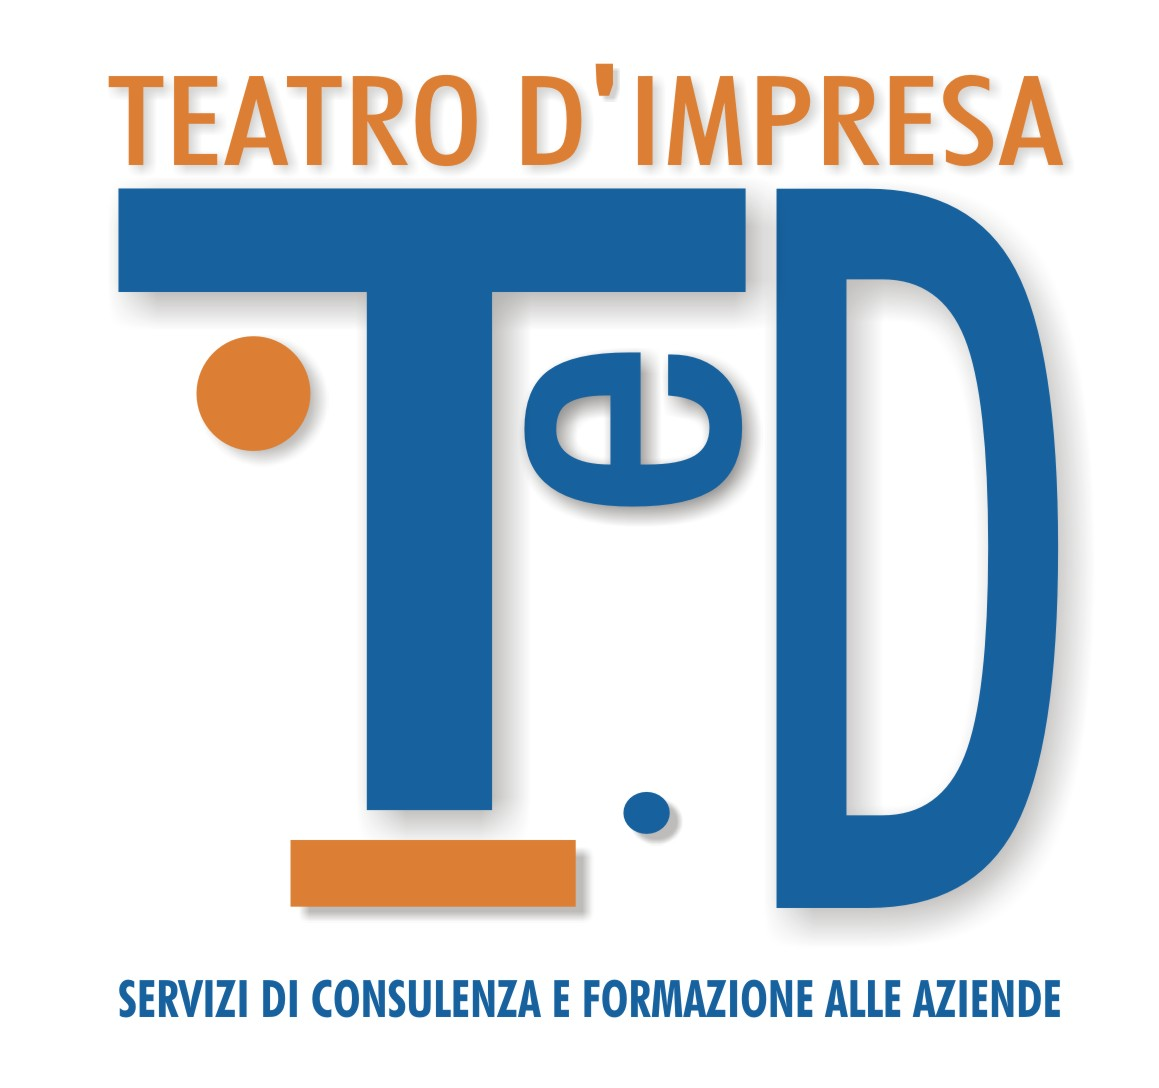 Team-Theatre per Danone - Fare Team-building con il Teatro